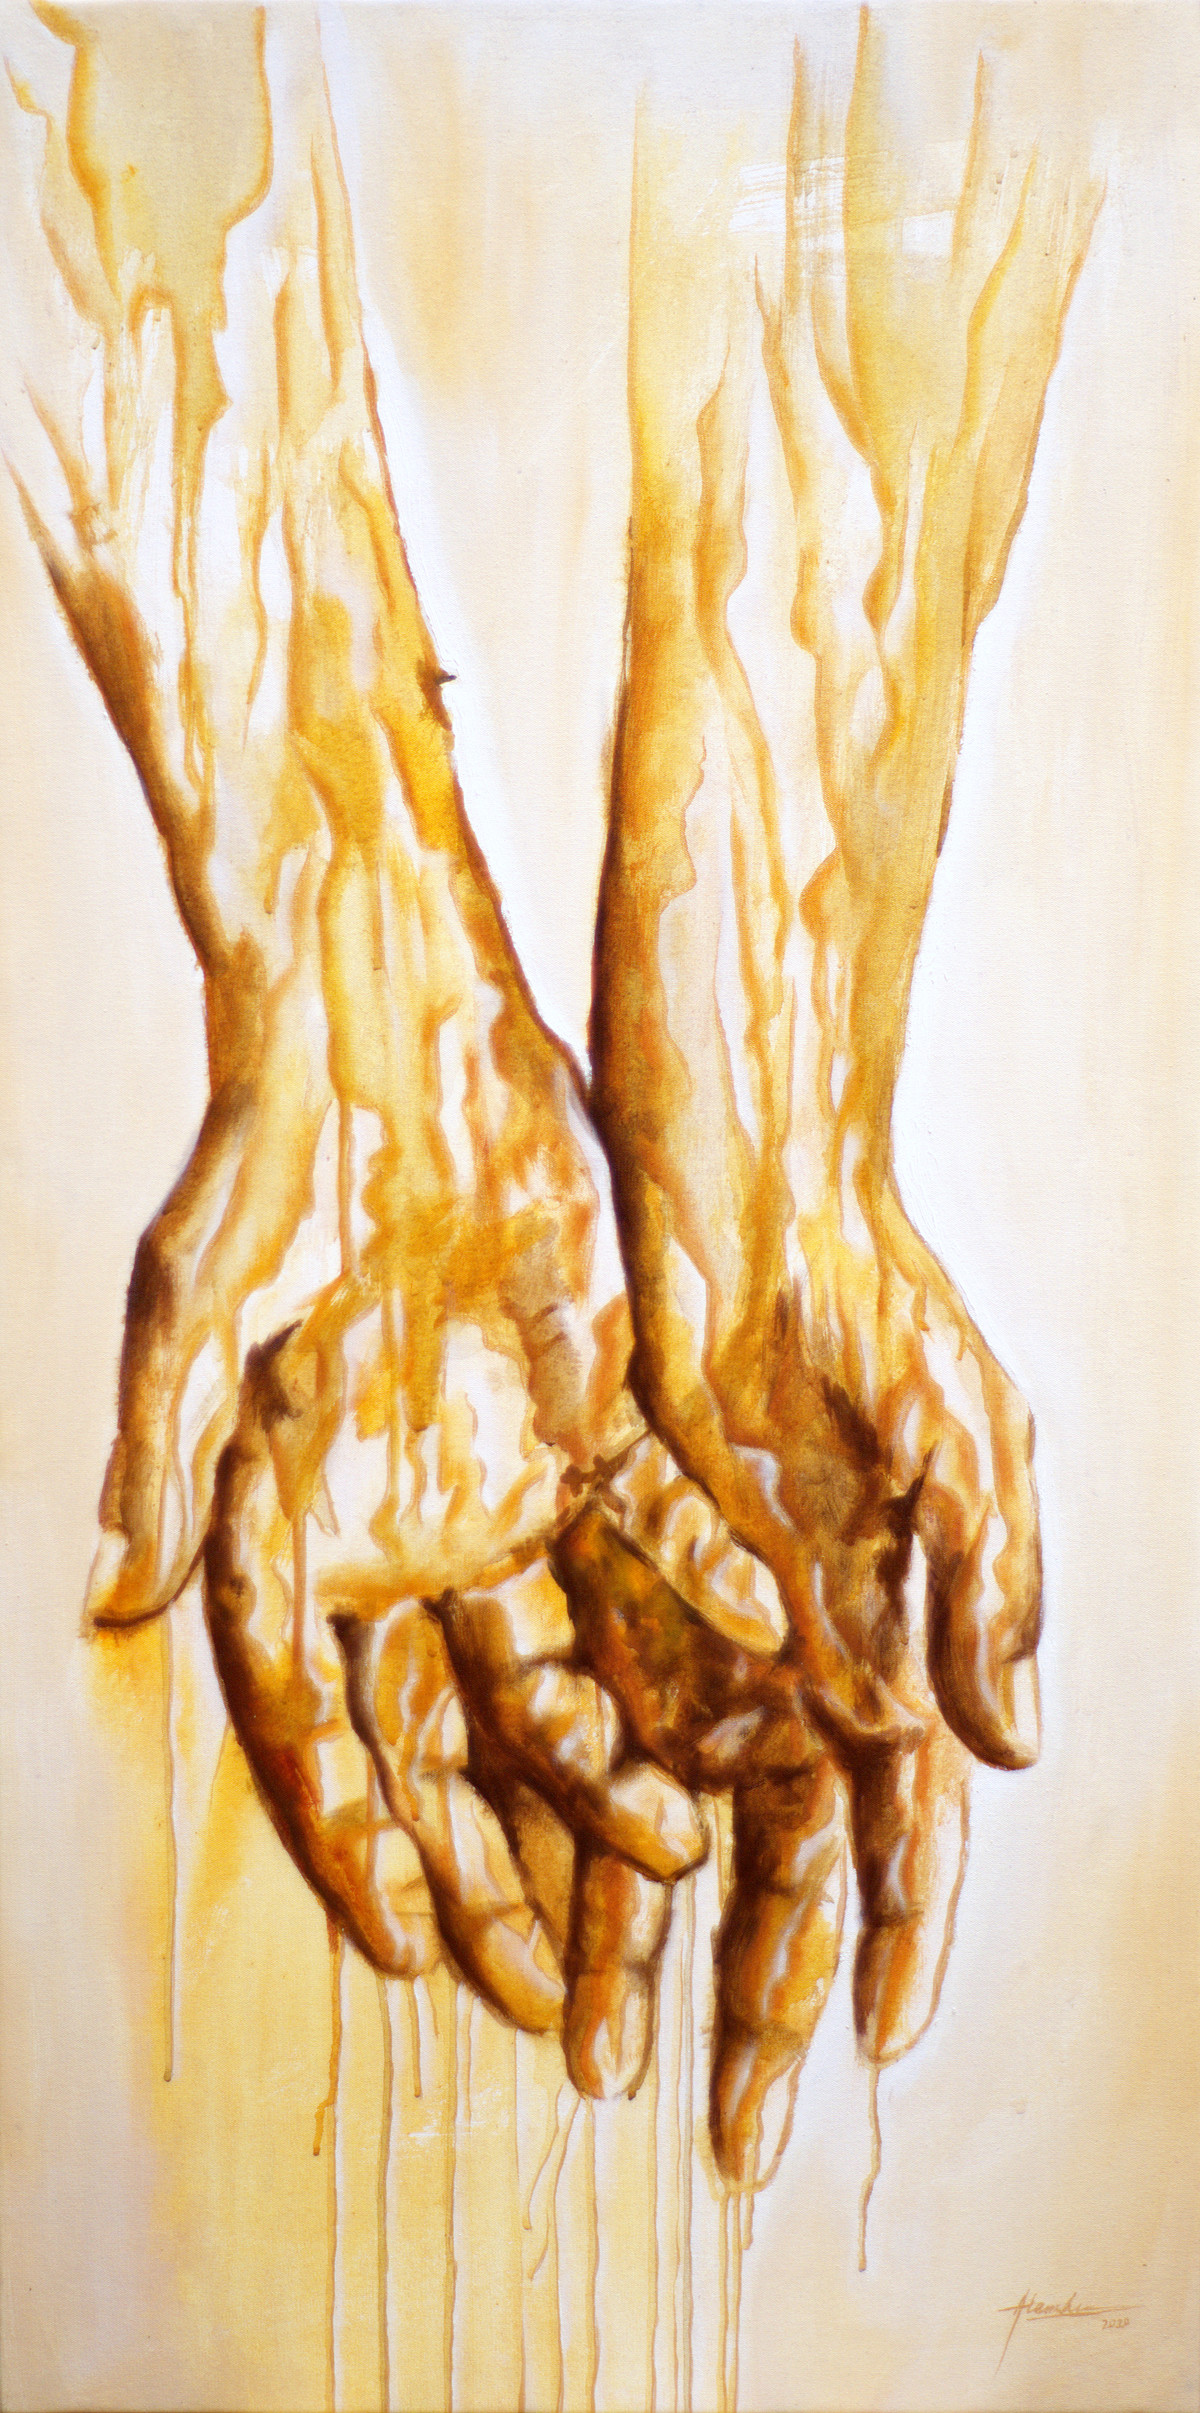 All I own is in the palm of my hand by Alamelu Annhamalai, Impressionism Painting, Acrylic on Canvas, Marigold color